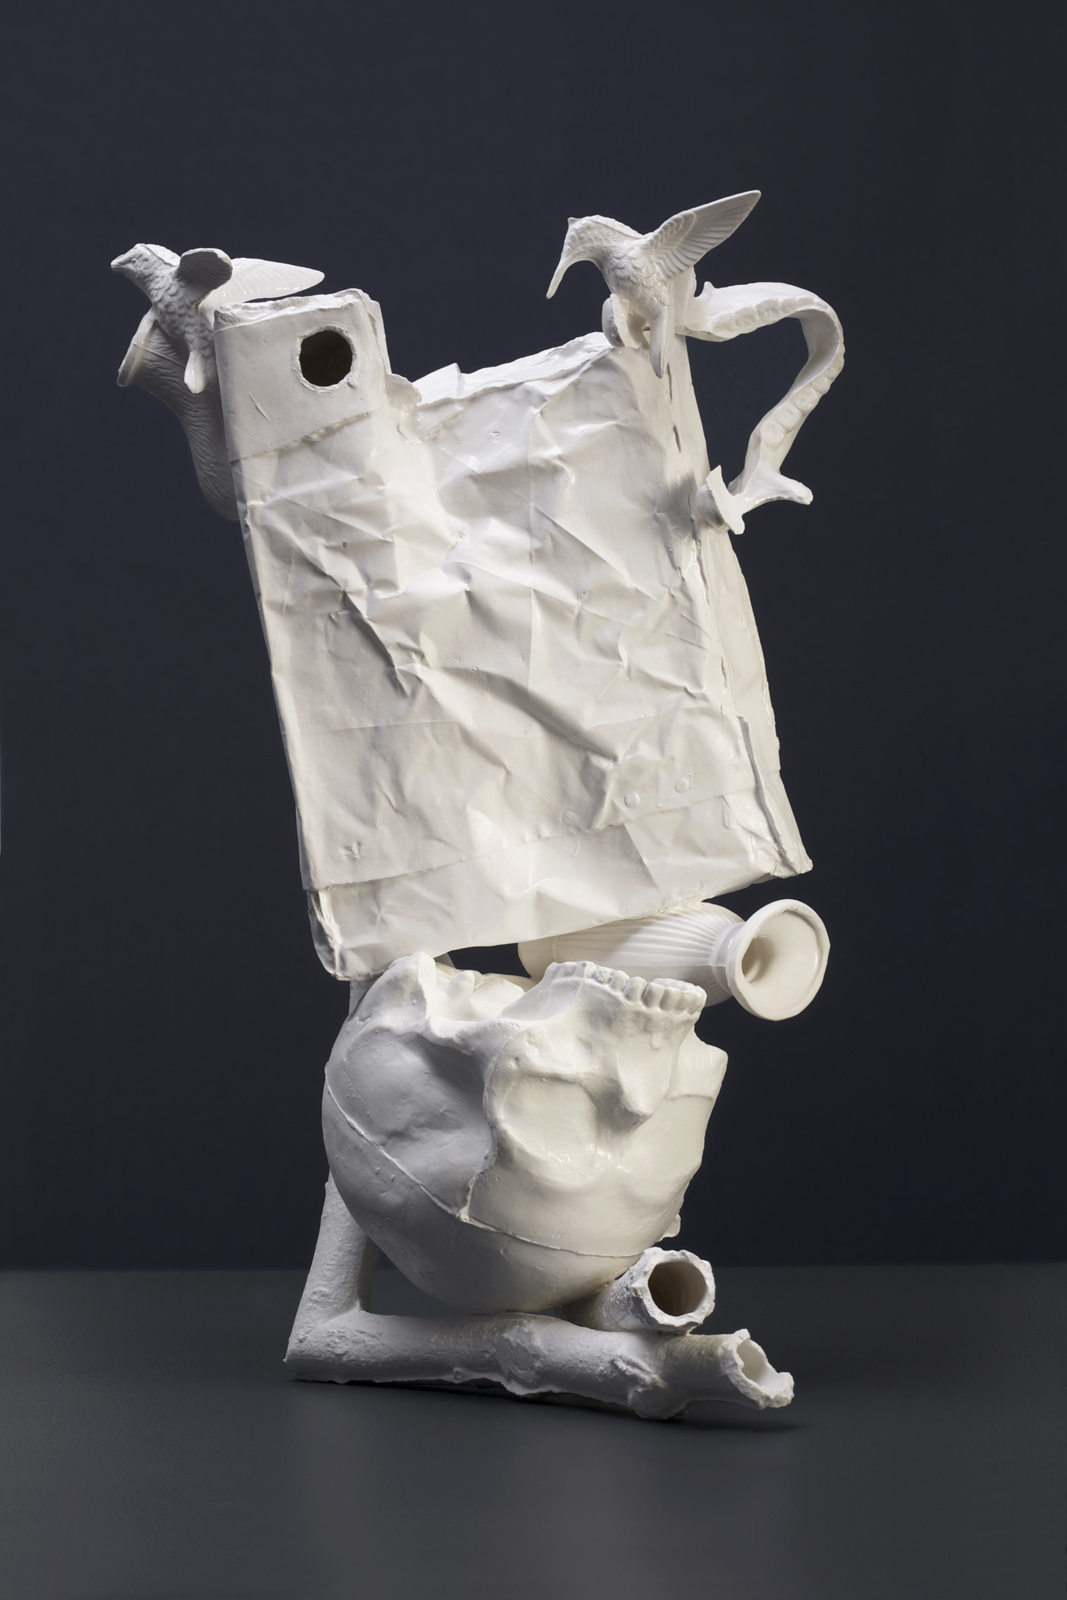 Fuddling Maneuver: Rod Bamford : 2011: Bone China, Clay waste: 290 x 200 x 480 mm: Photograph Ian Hobbs.